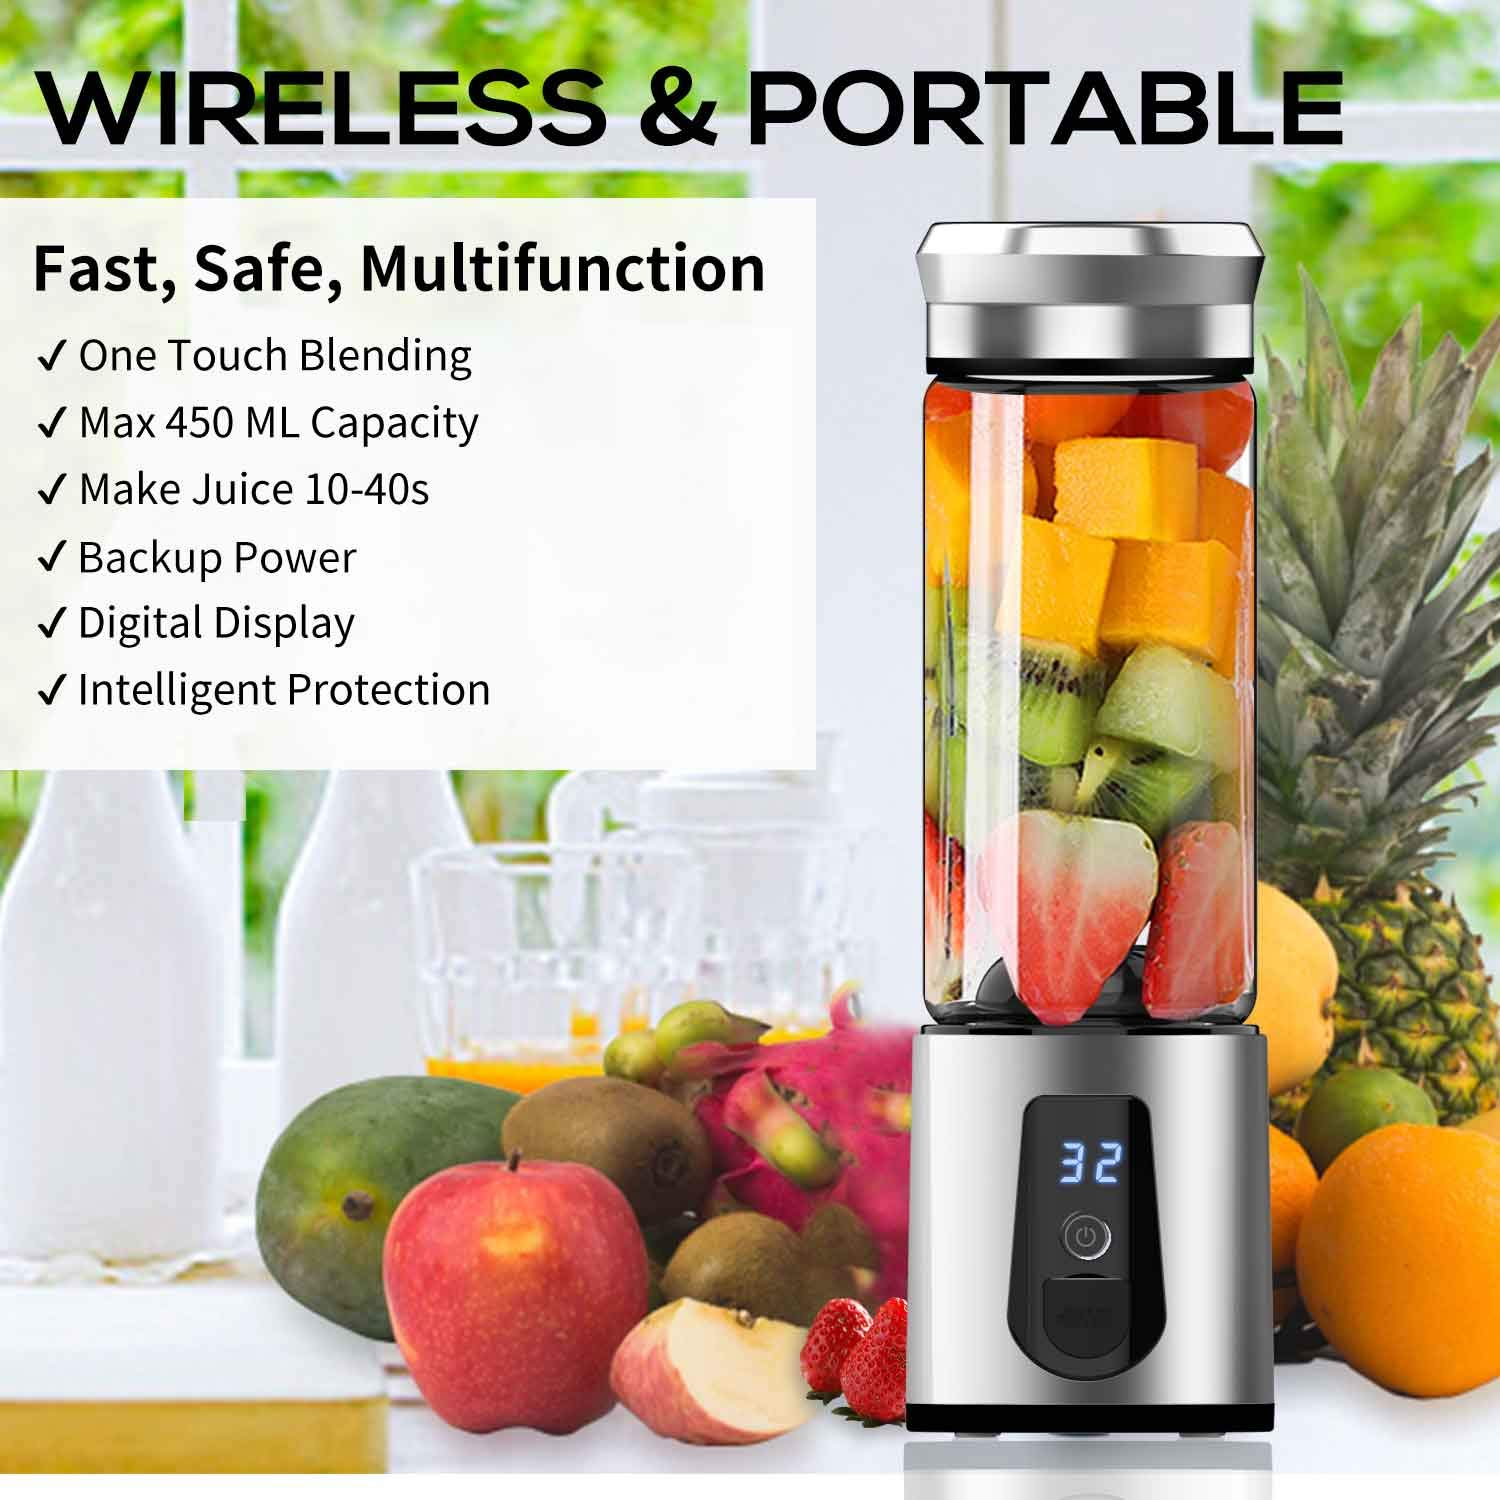 Personal Smoothie Blender,DOUHE Rechargeable Portable Blender Small Blender Mini USB Juicer Mixer -Shakes,Smoothies,Baby Food - Outdoor Travel Home Office,High Borosilicate Glass,BPA Free,Cordless by DOUHE (Image #2)